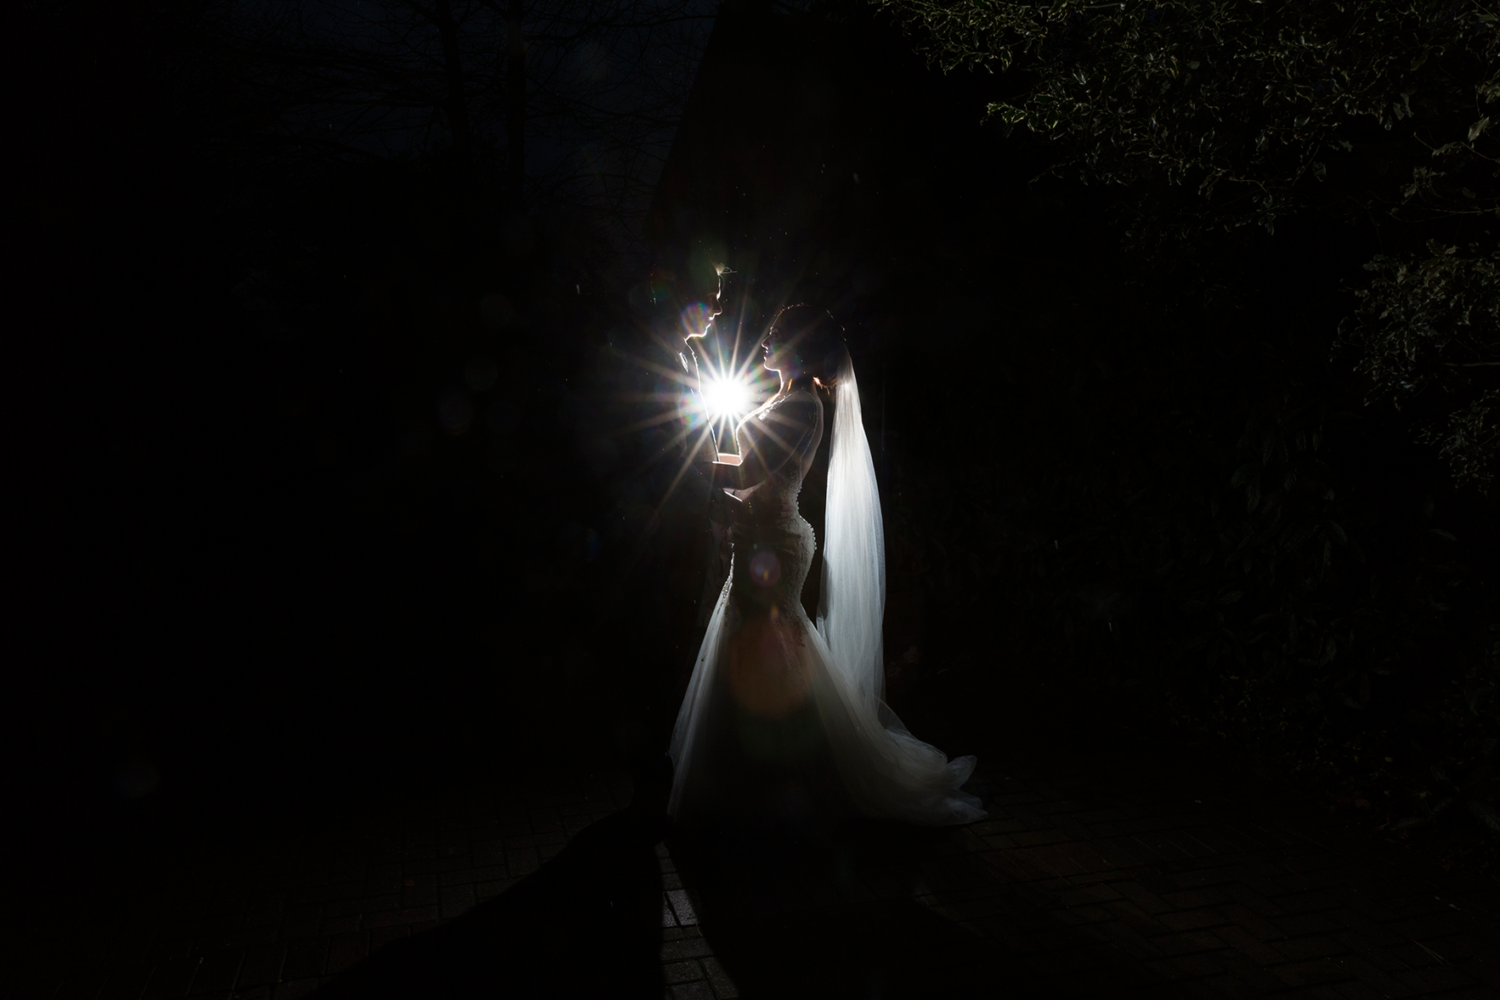 Star shot of the Bride and Groom at York Registry Office.